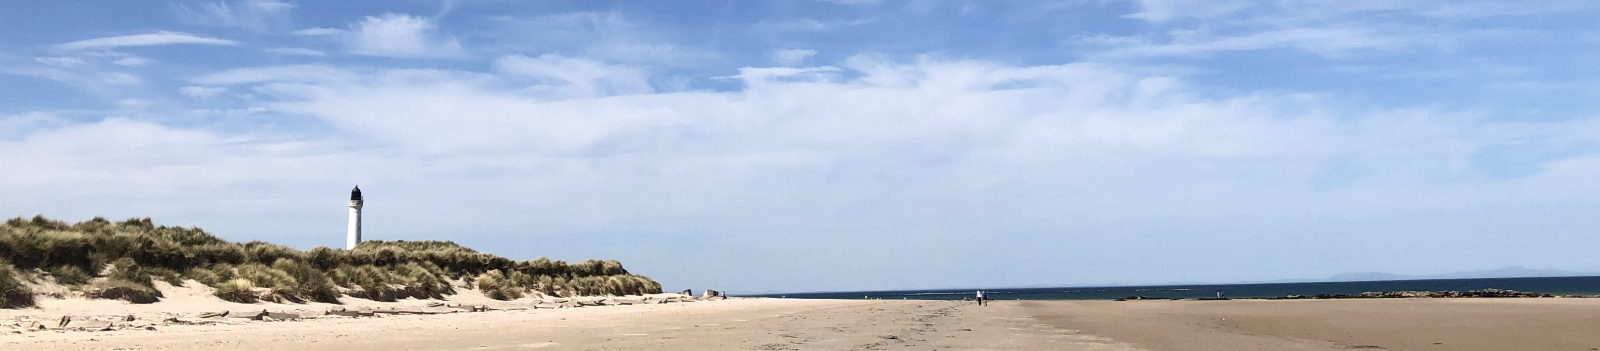 West-Beach-Lossiemouth-with-Lighthouse-and-Wide-Sand-Expanse